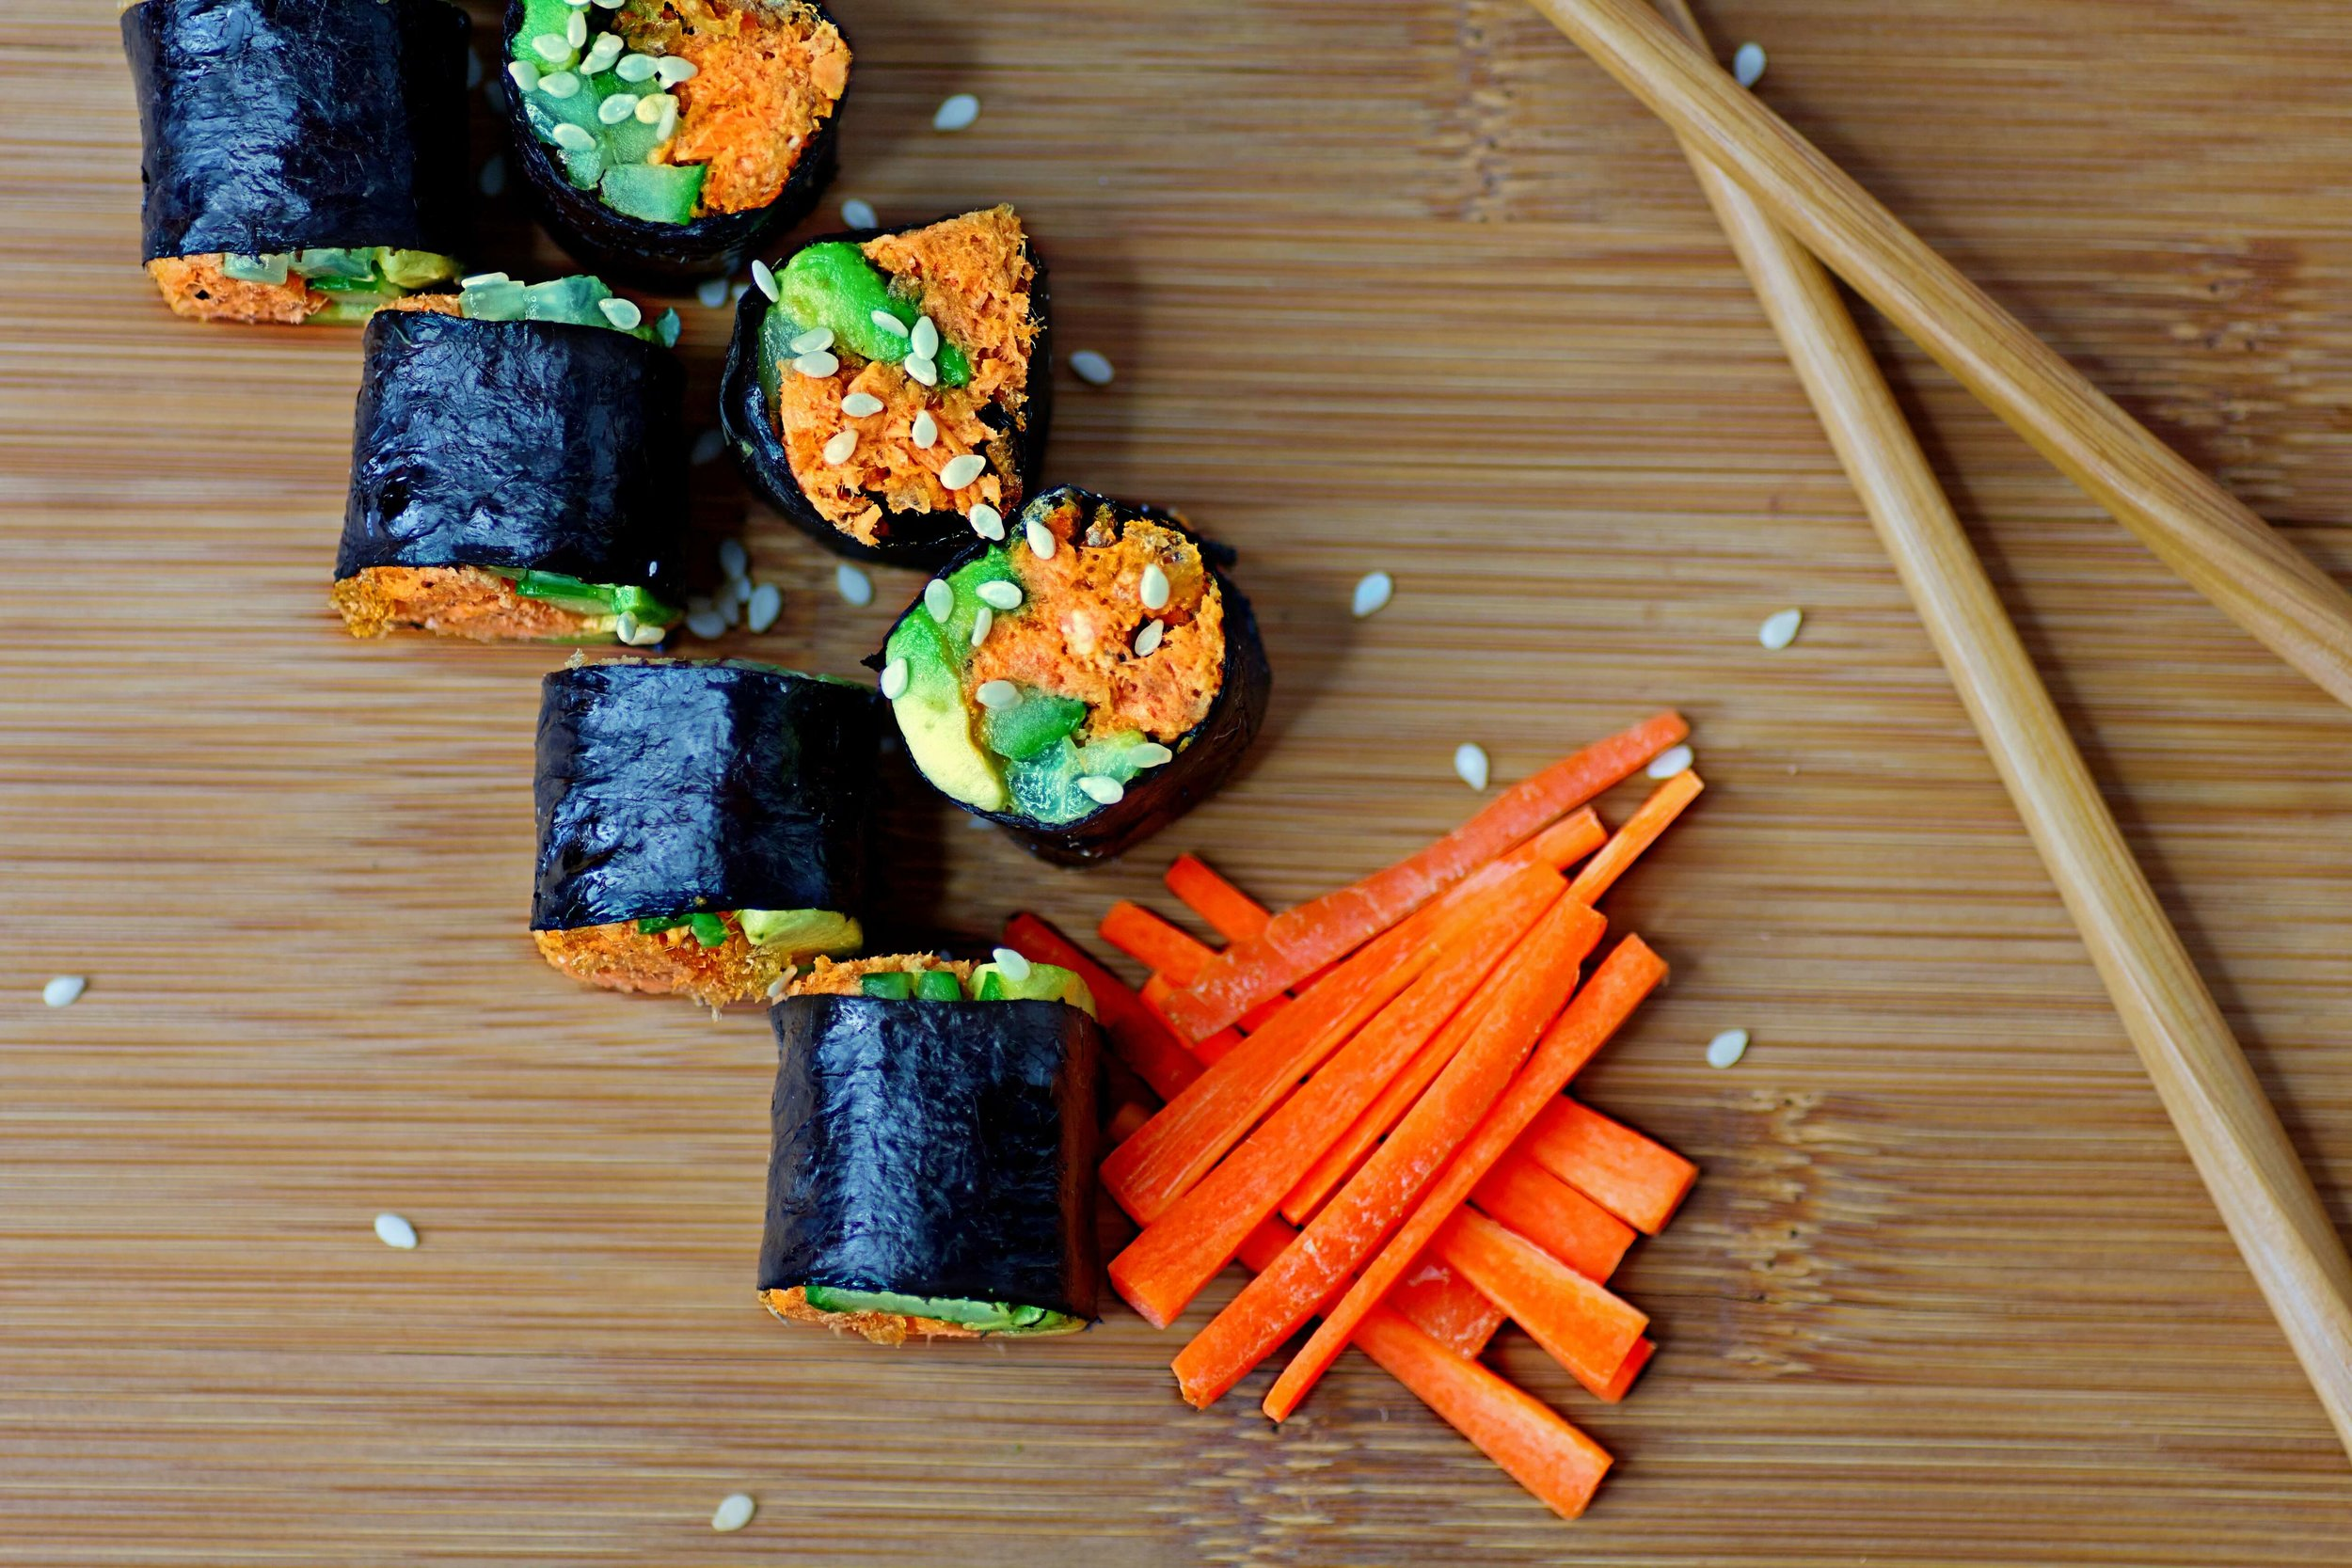 Love sushi, but hate the carbs? This keto spicy salmon tempura roll feeds your sushi fix with a healthy dose of crunch (and only 3.5 net carbs per roll!).